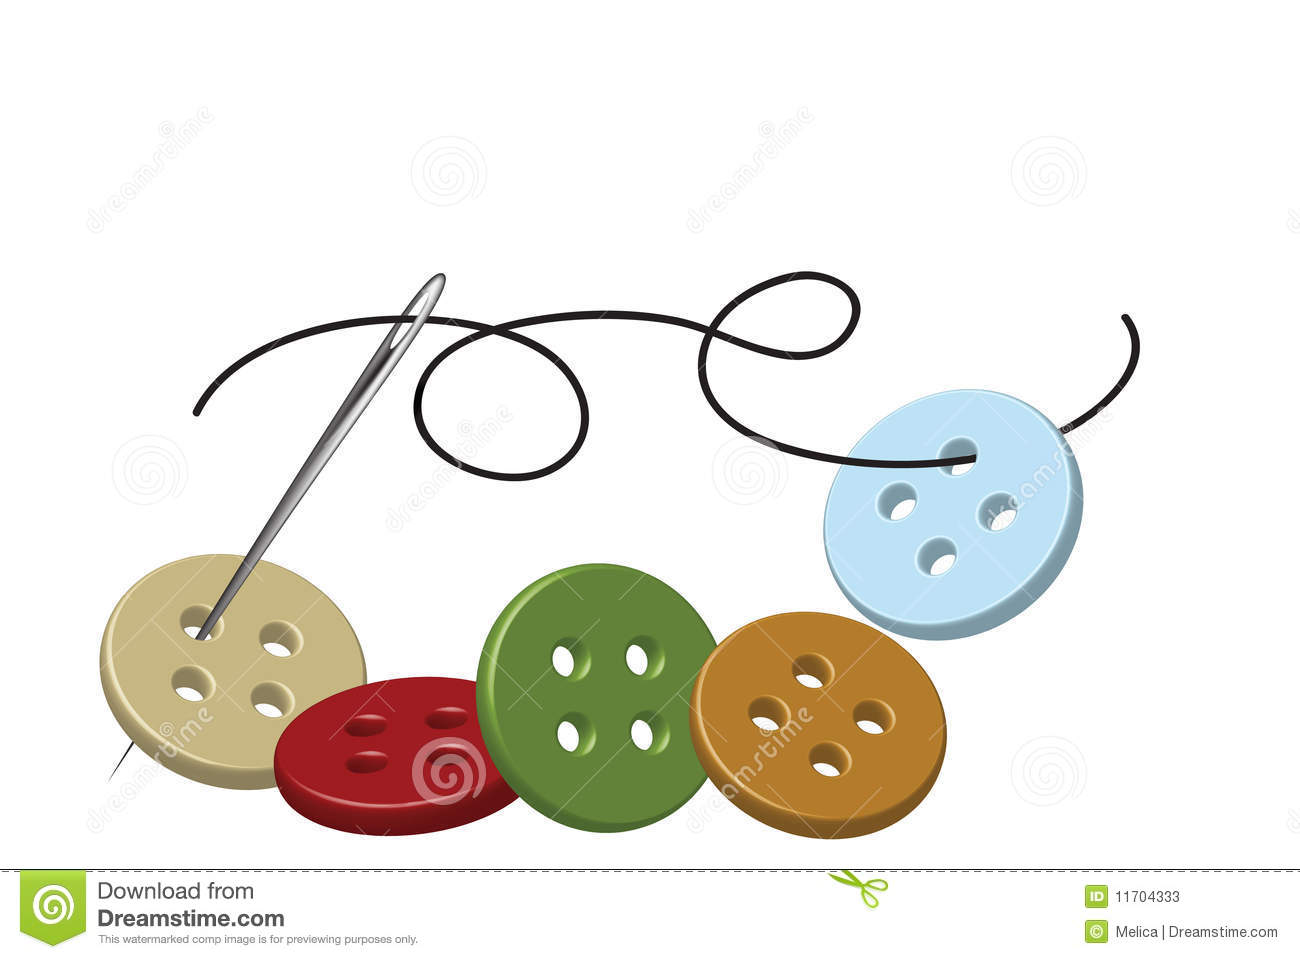 Sewing Needle And Thread With Buttons Stock Photos - Image: 11704333